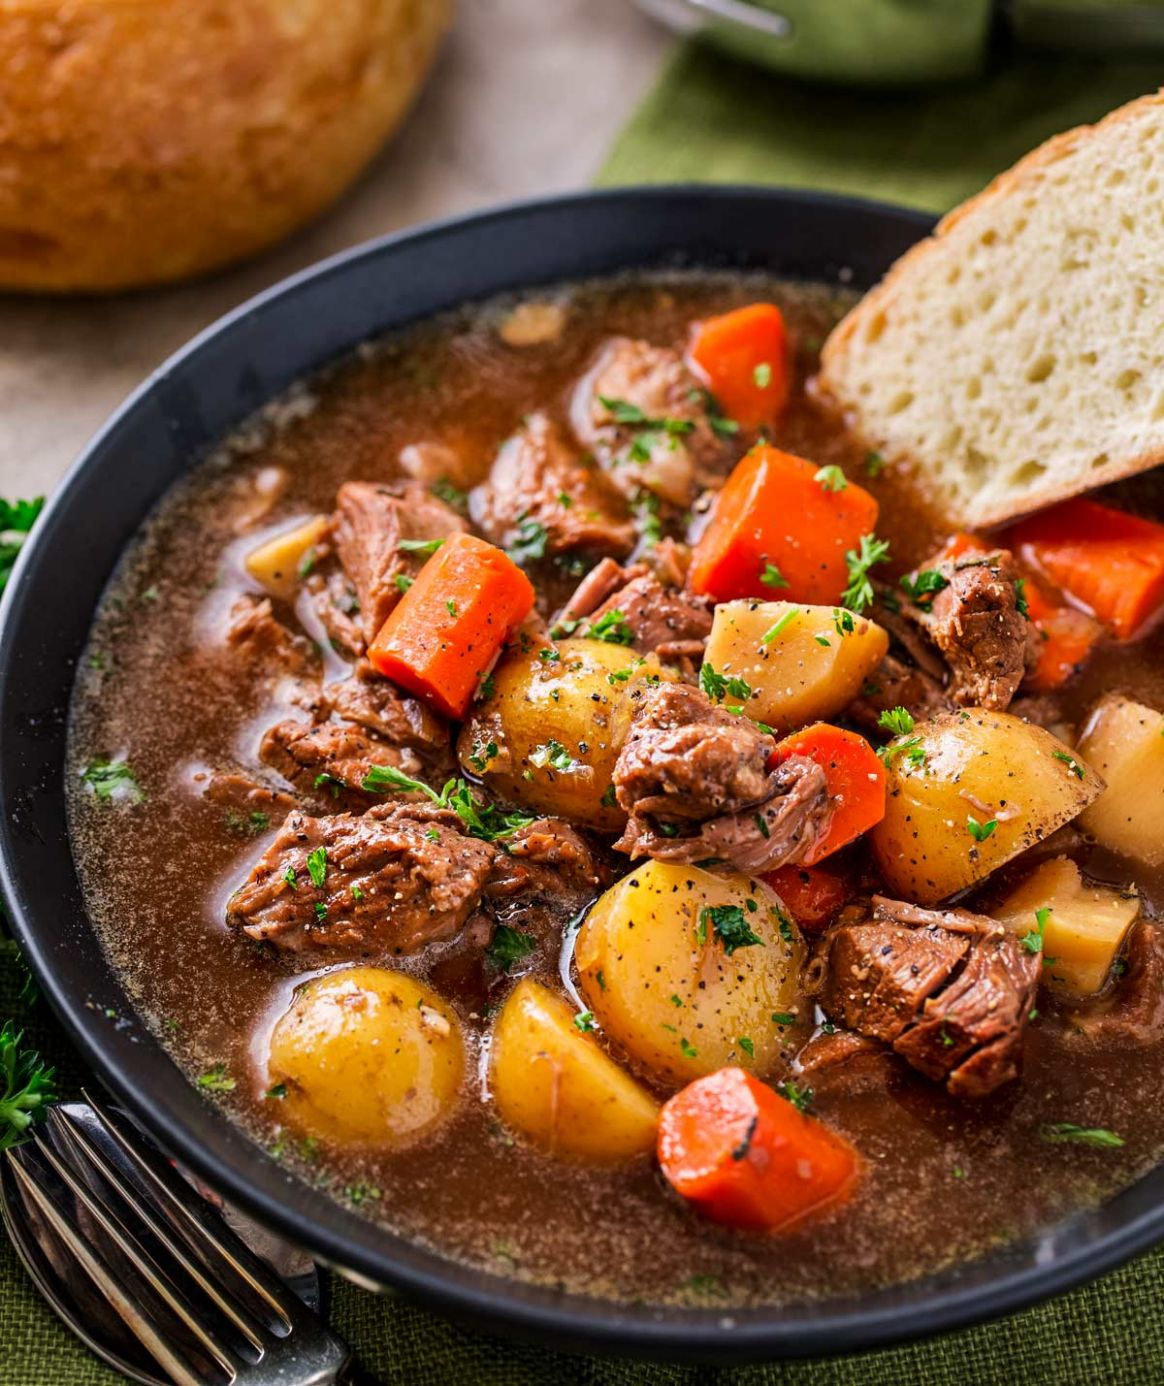 Crockpot Beef Stew - Recipes Beef In Crock Pot